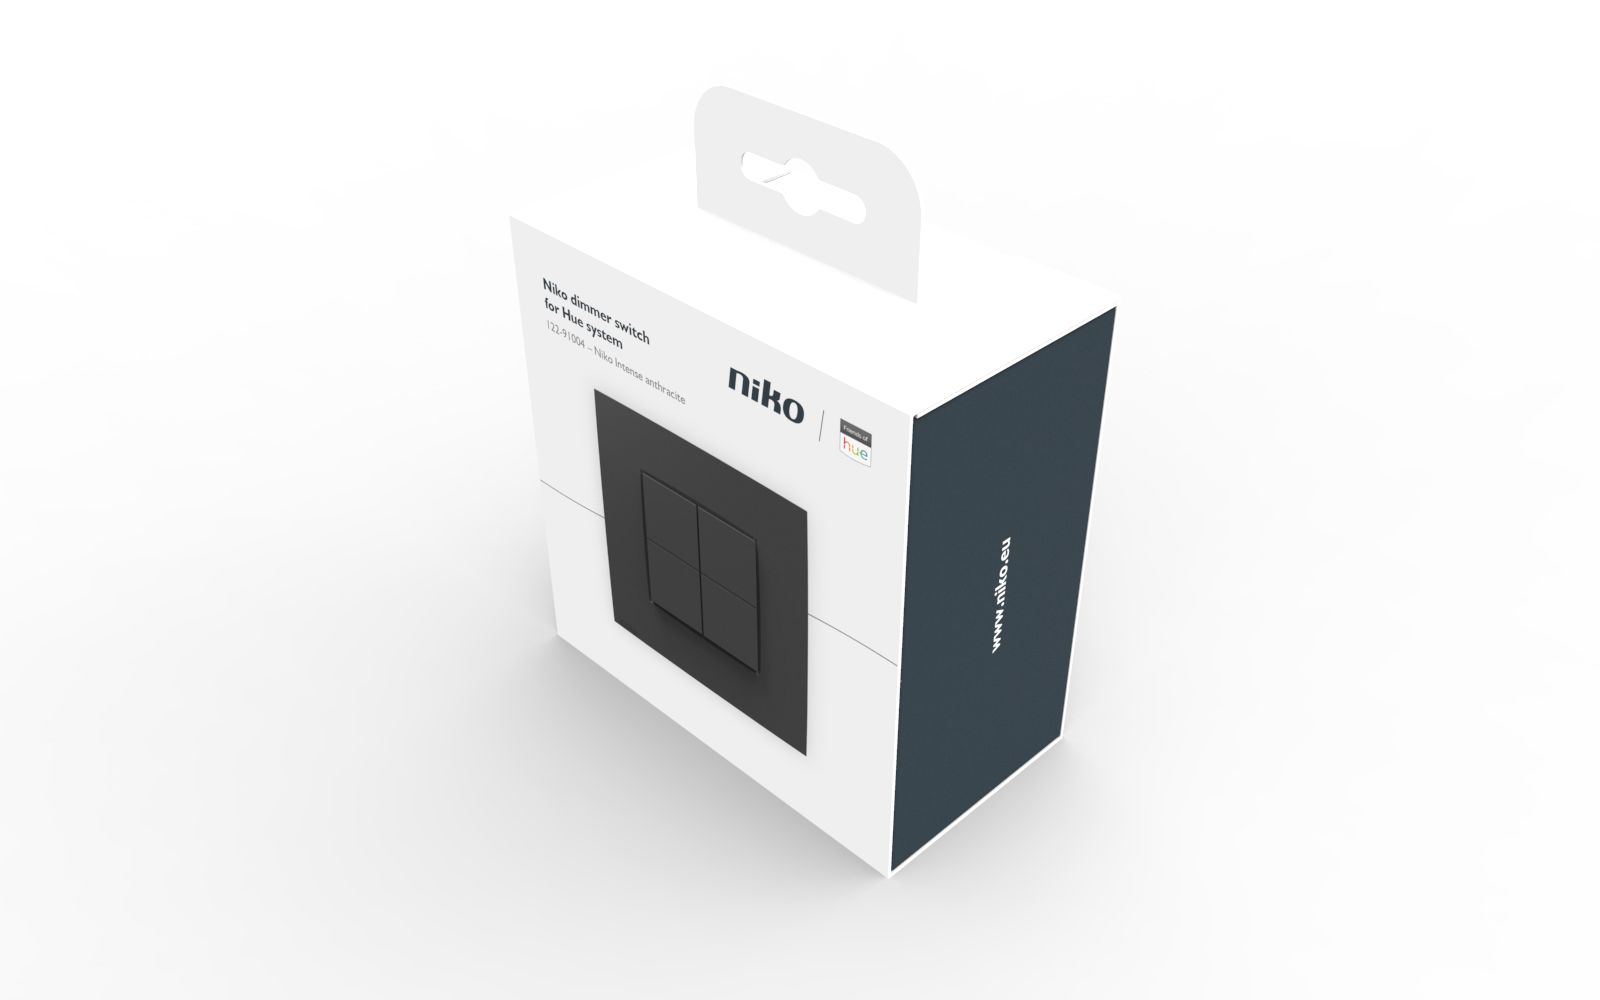 NIKO Dimmer switch HUE intense anthracite (5413736363625)